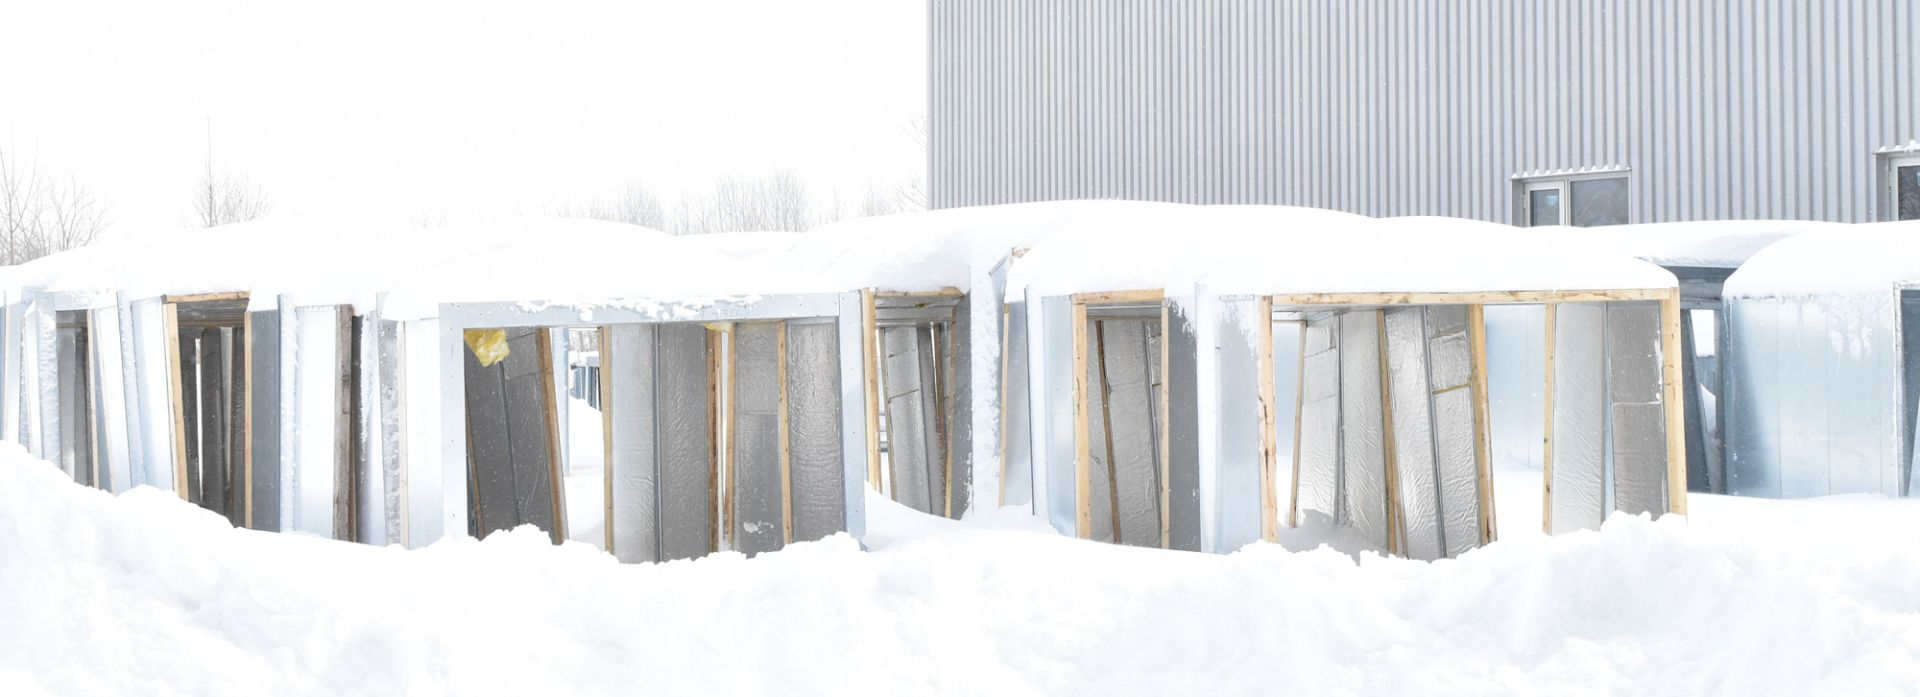 Lot 538 - LOT/ WALL PANEL FRAMES (IN YARD) (LOCATED AT 5500 RUE YVON TRUDEAU, BECANCOUR, QC, G9H 2V6)